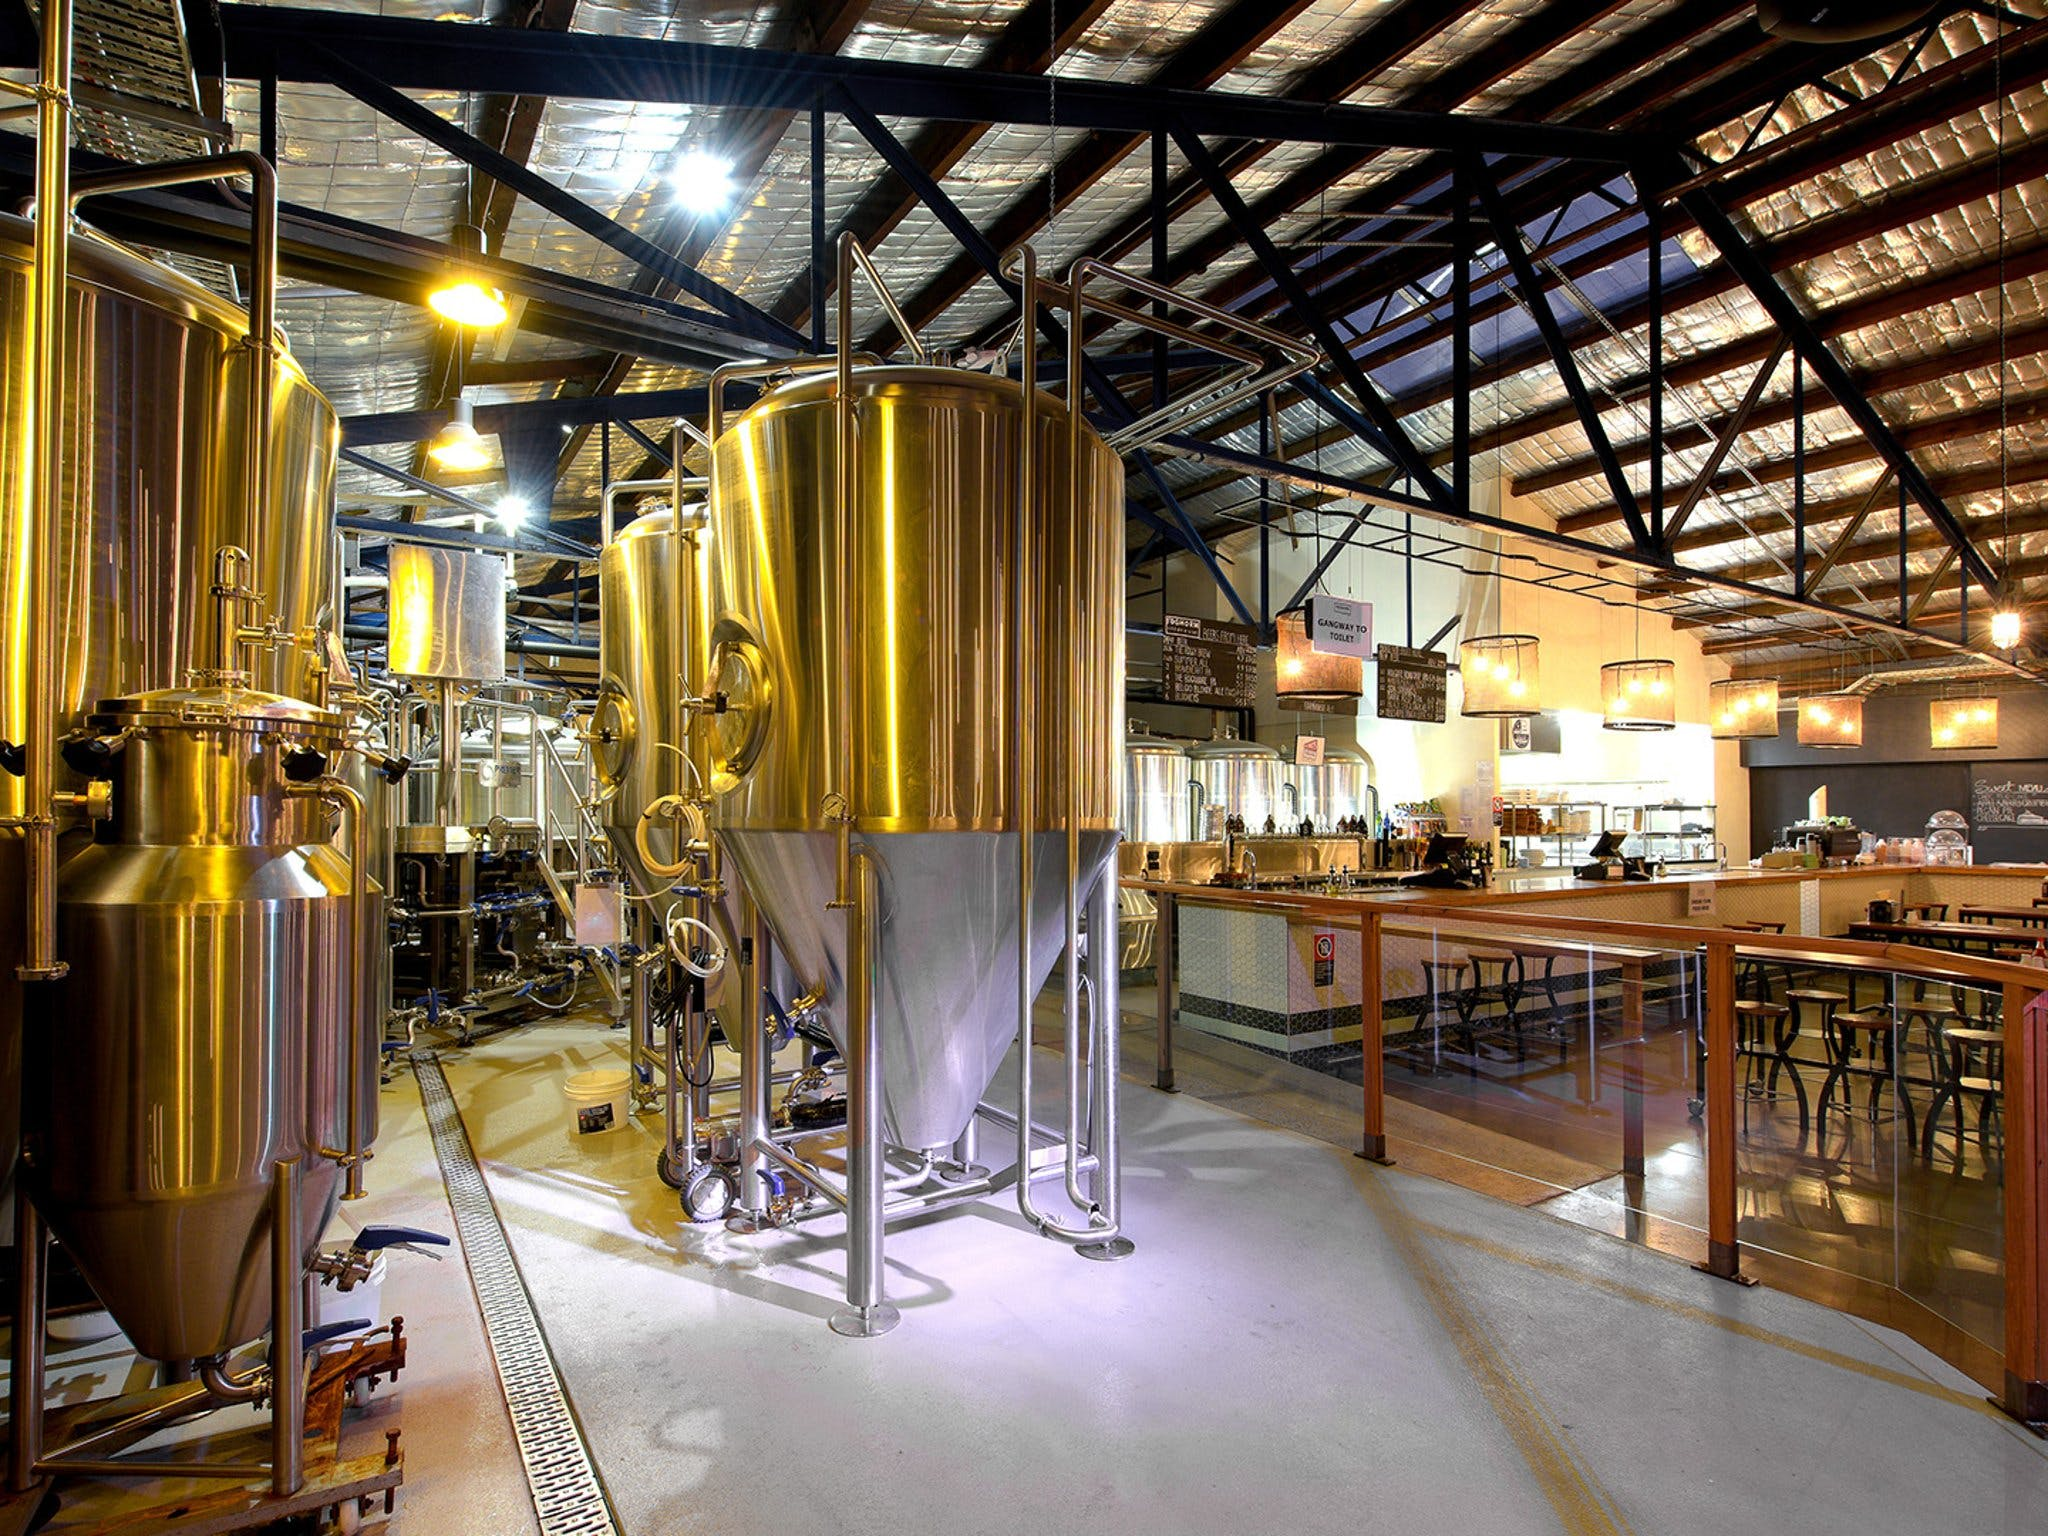 Interior of FogHorn Brewhouse with fermentation tanks in brewery area